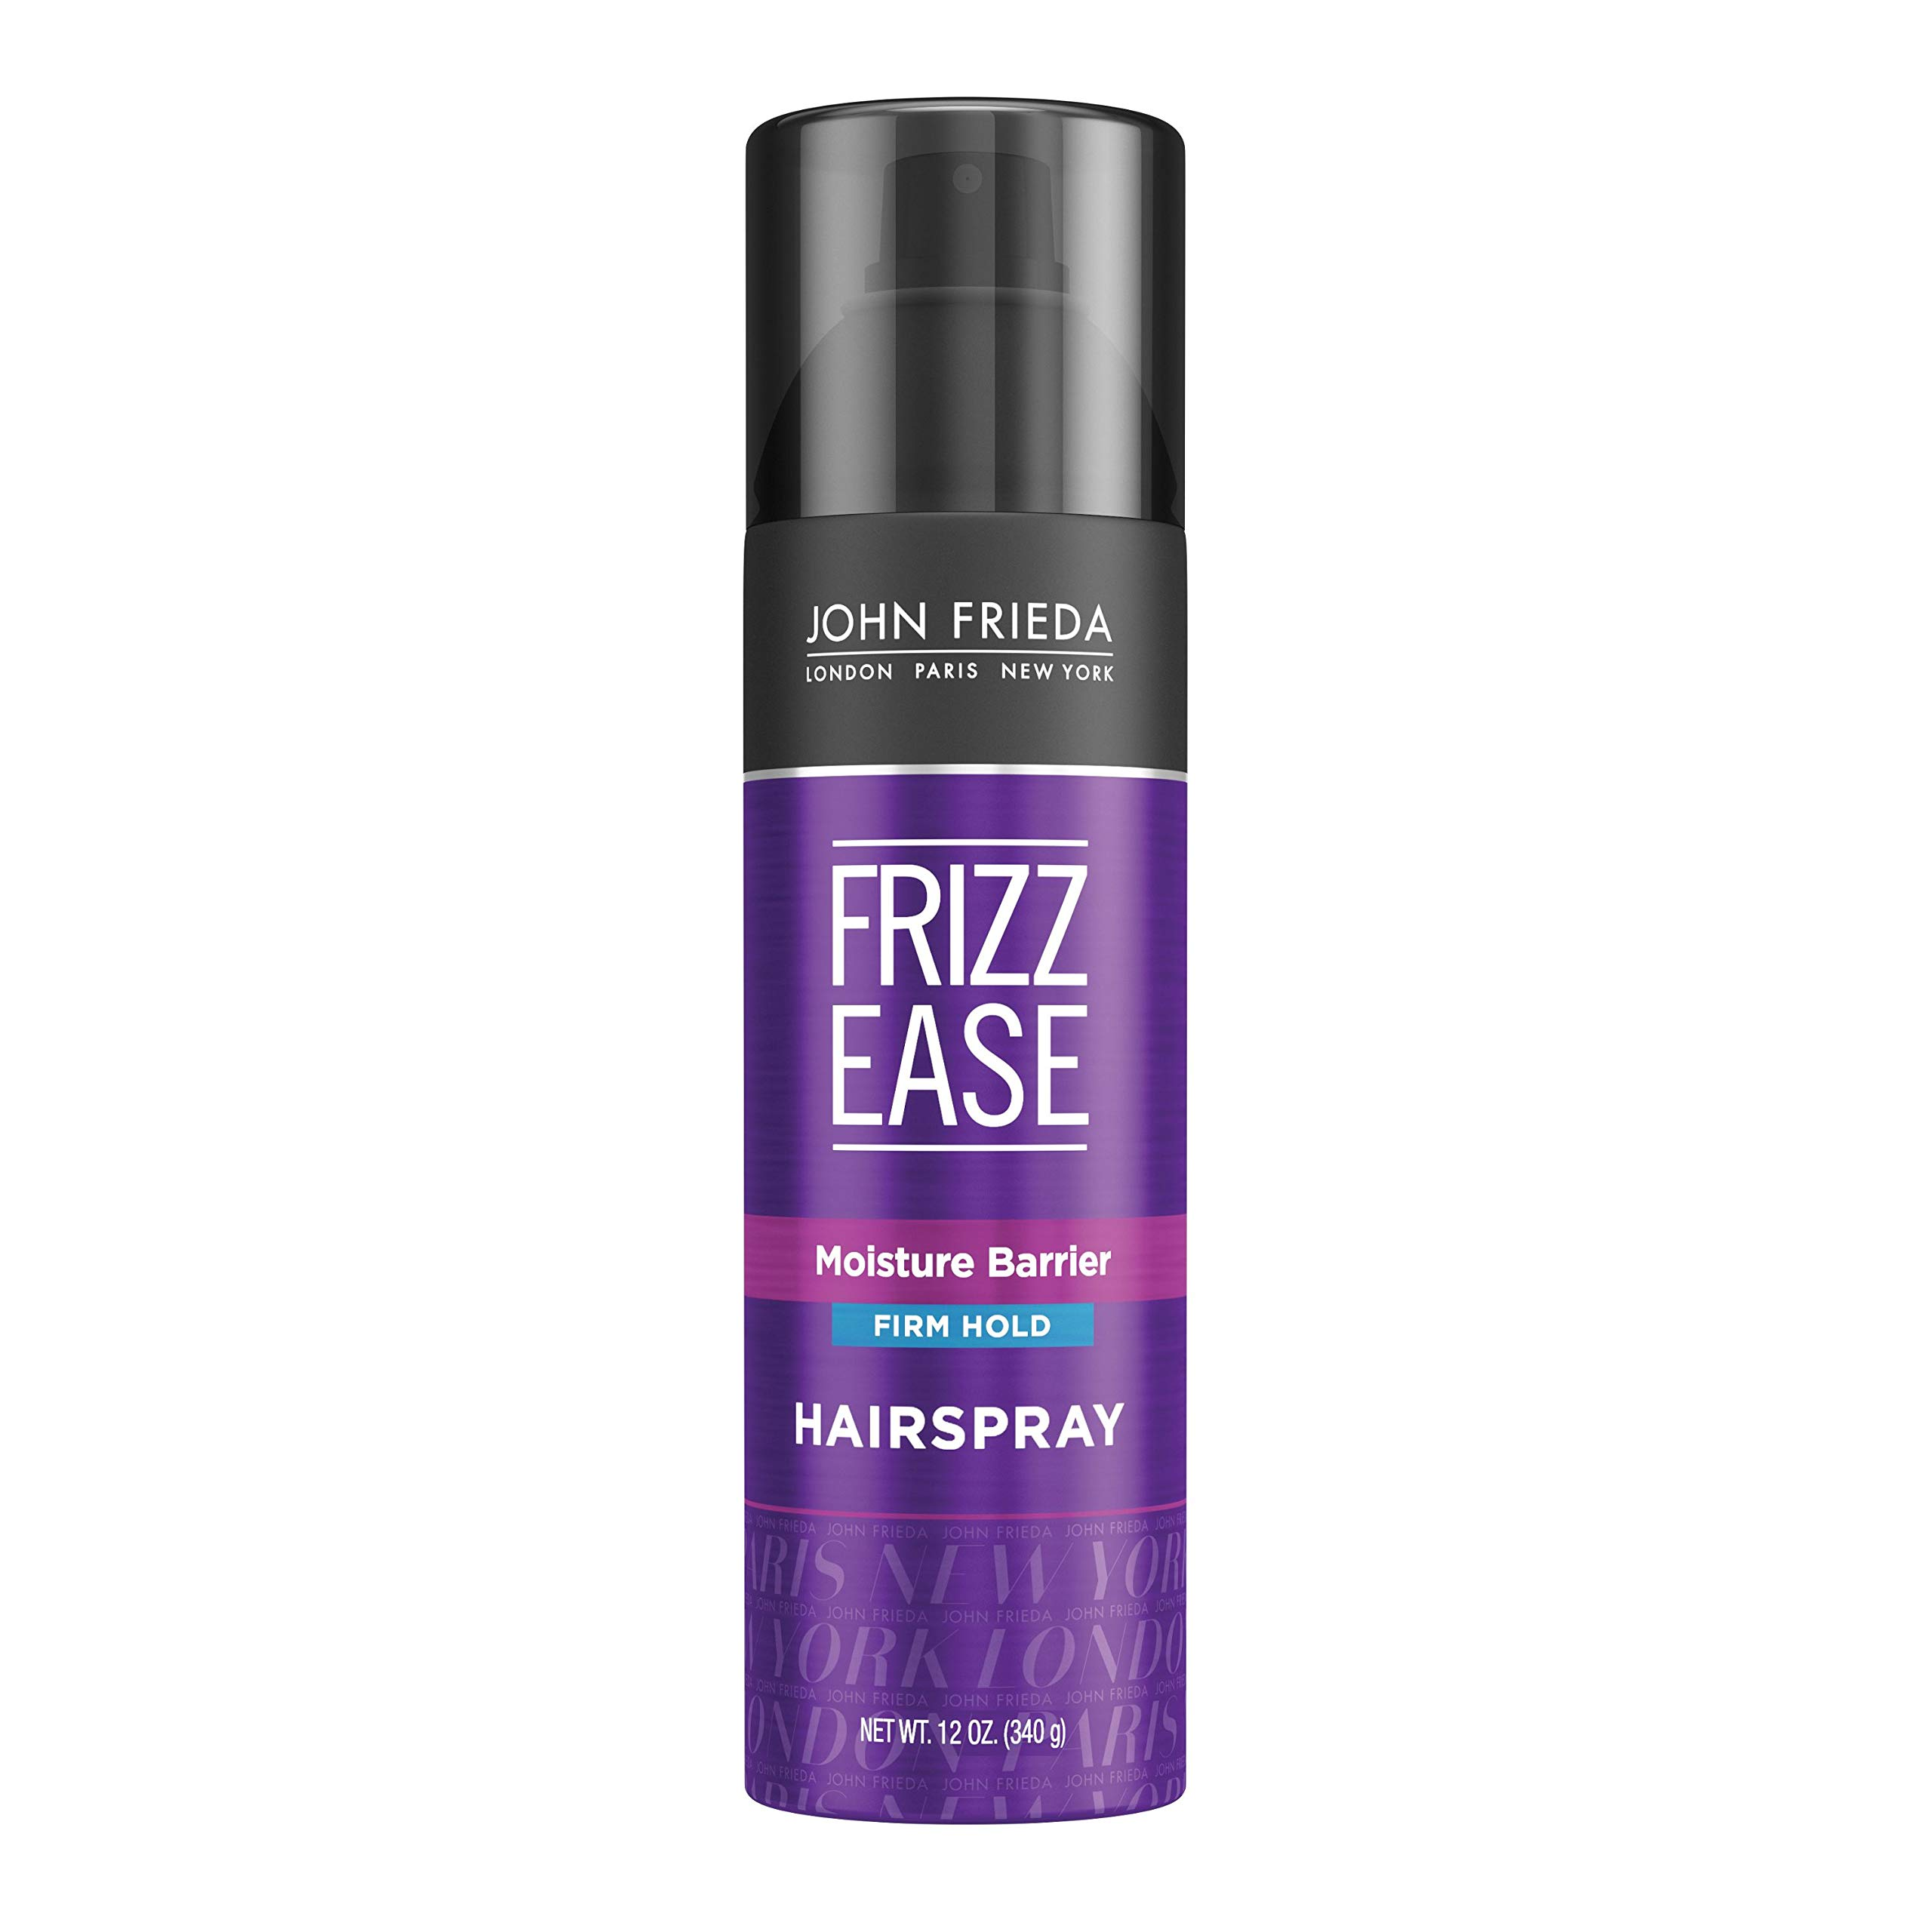 John Frieda Frizz Ease Firm Hold Hairspray, Anti Frizz Hair Straightener, Heat Protectant Spray, for Dry, Damaged Hair, Unscented, 12 Oz